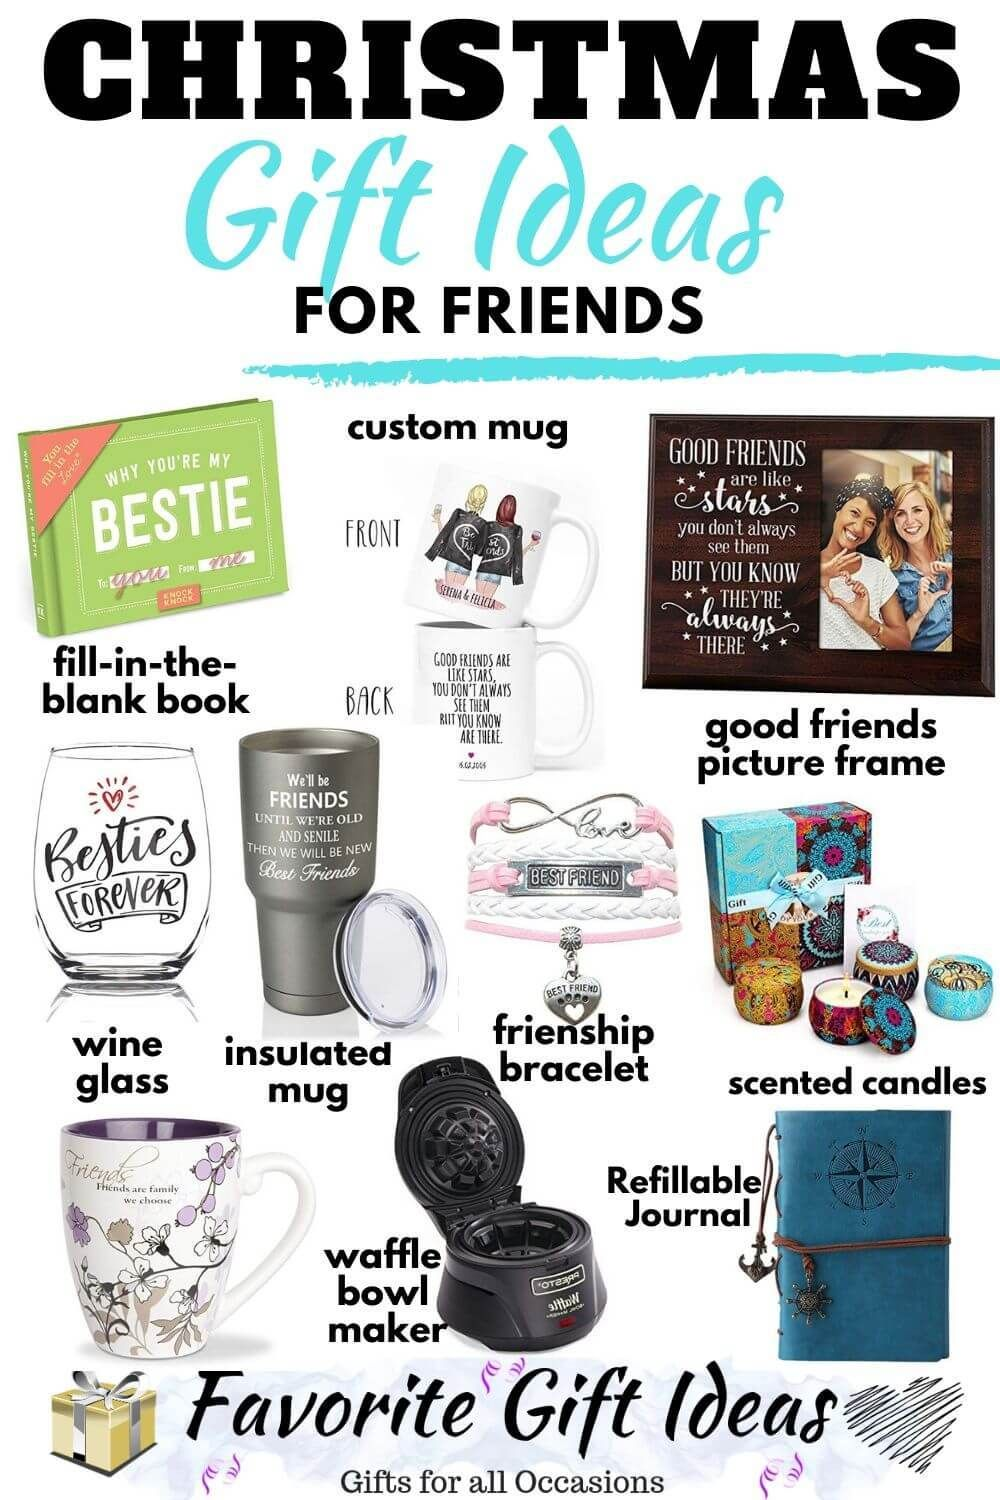 20 Christmas Gift Ideas For Friends 2019 Diy Best Friend Gifts